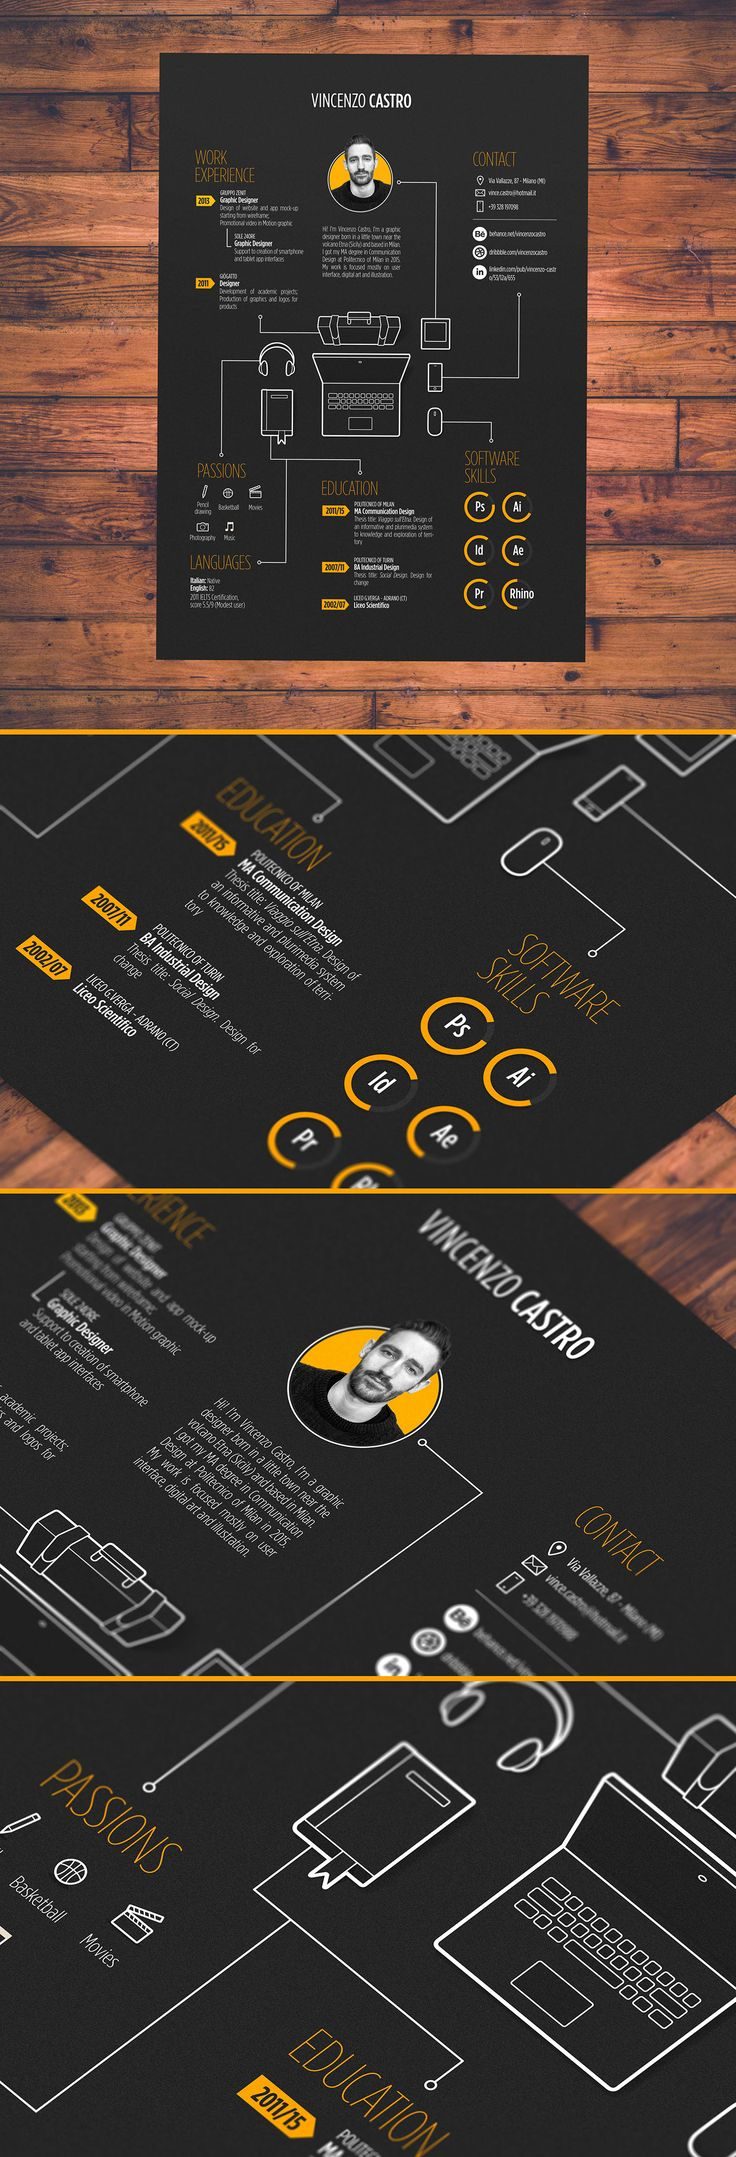 graphic design resume solarfmtk